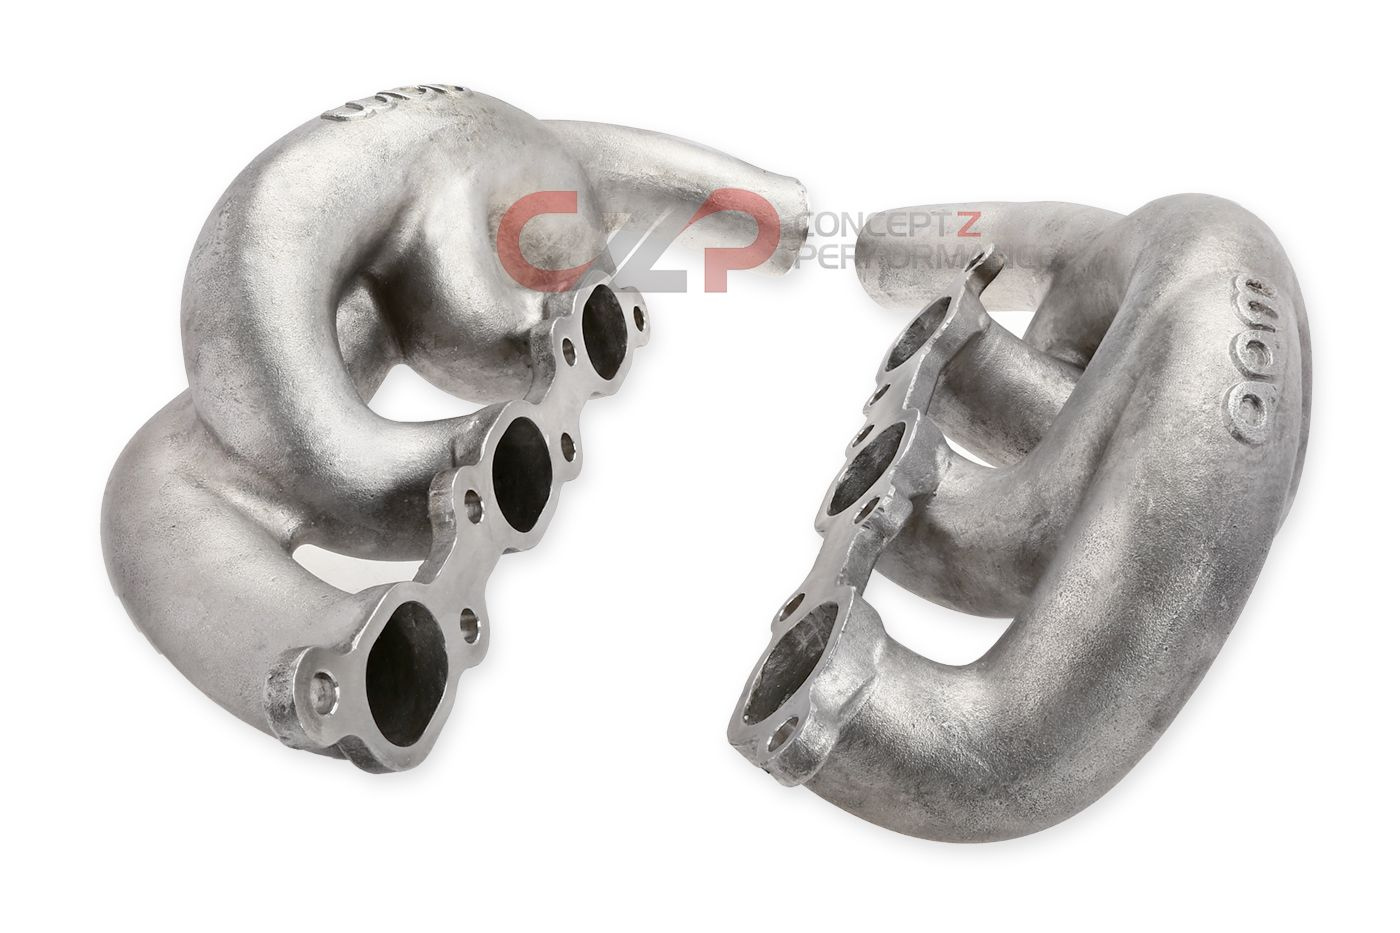 AAM Competition Turbo Exhaust Manifolds - Nissan GT-R 09+ R35 AAMGTR-TEM -  Concept Z Performance